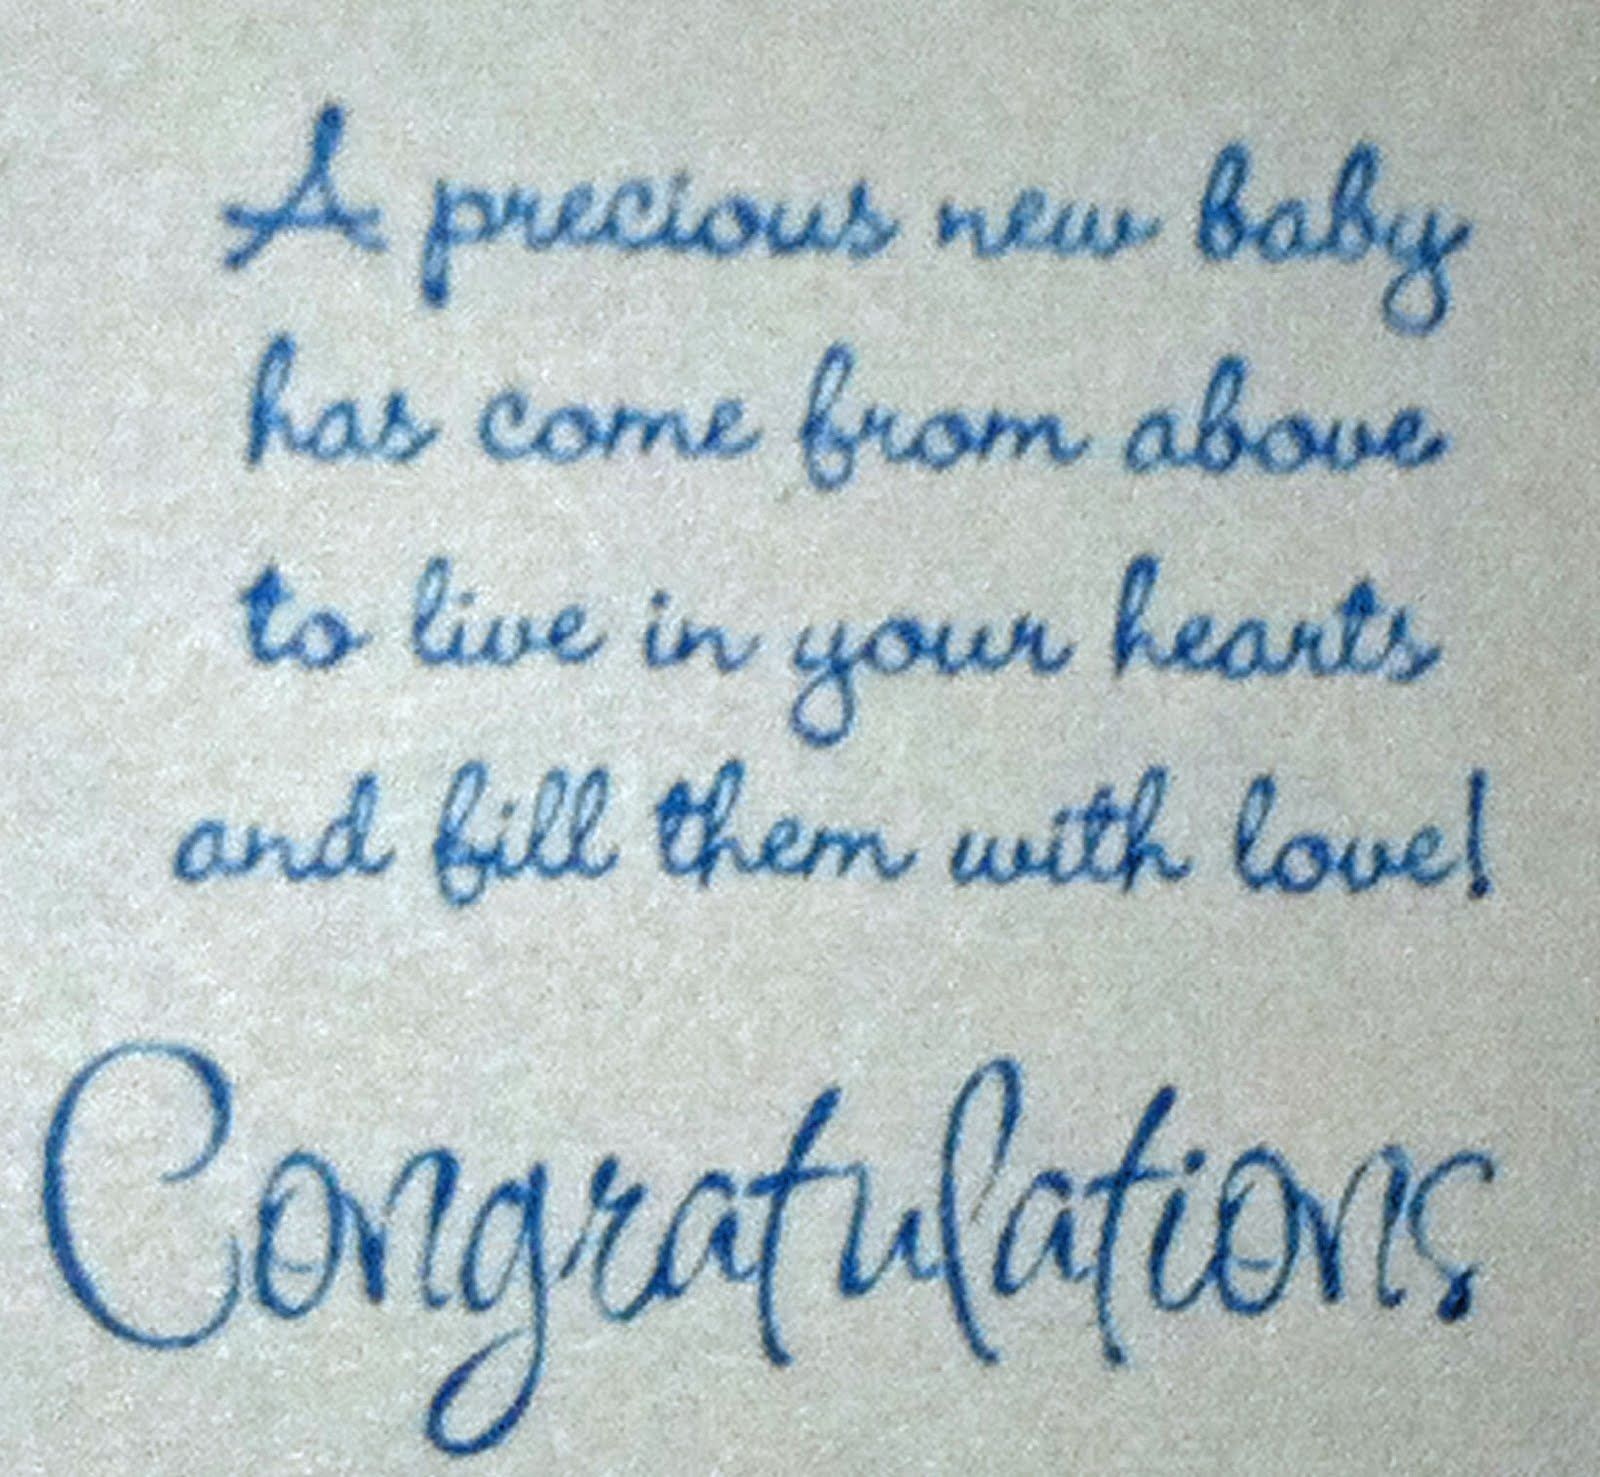 Fantastic Congratulations New Baby Boy Quotesgram Congratulations New Baby Boy Quotesgram Congratulations New Baby Girl Religious Congratulations New Baby Girl Message